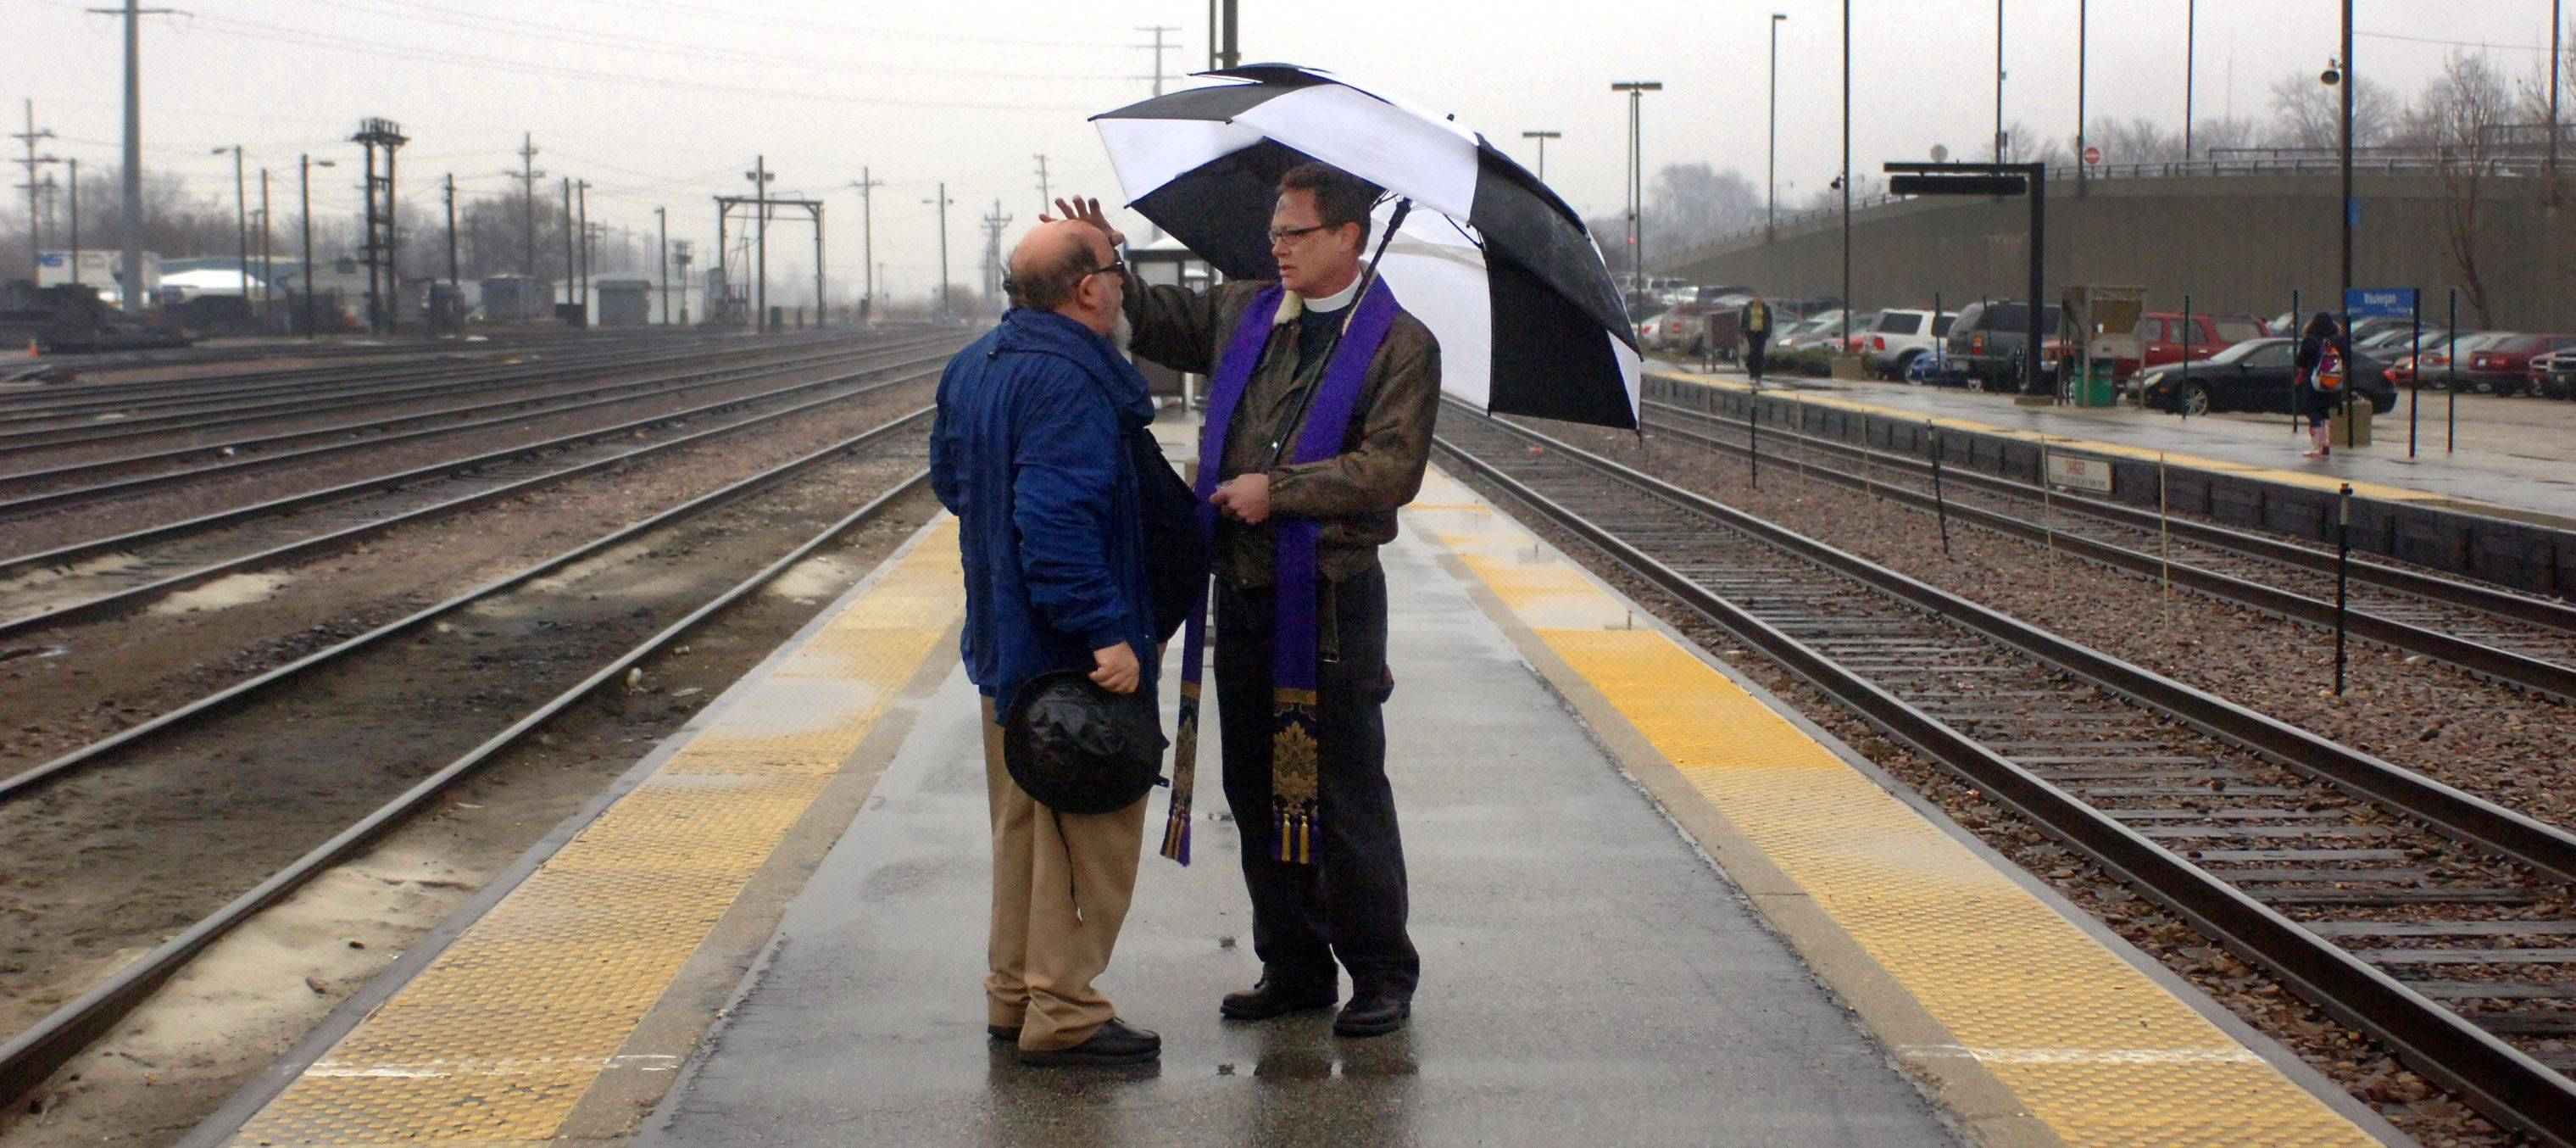 Beach Park resident John Anderson receives ashes from Rev. Clyde Elledge of Annunciation of Our Lady Episcopal Church in Gurnee Wednesday morning at the Waukegan Metra station.